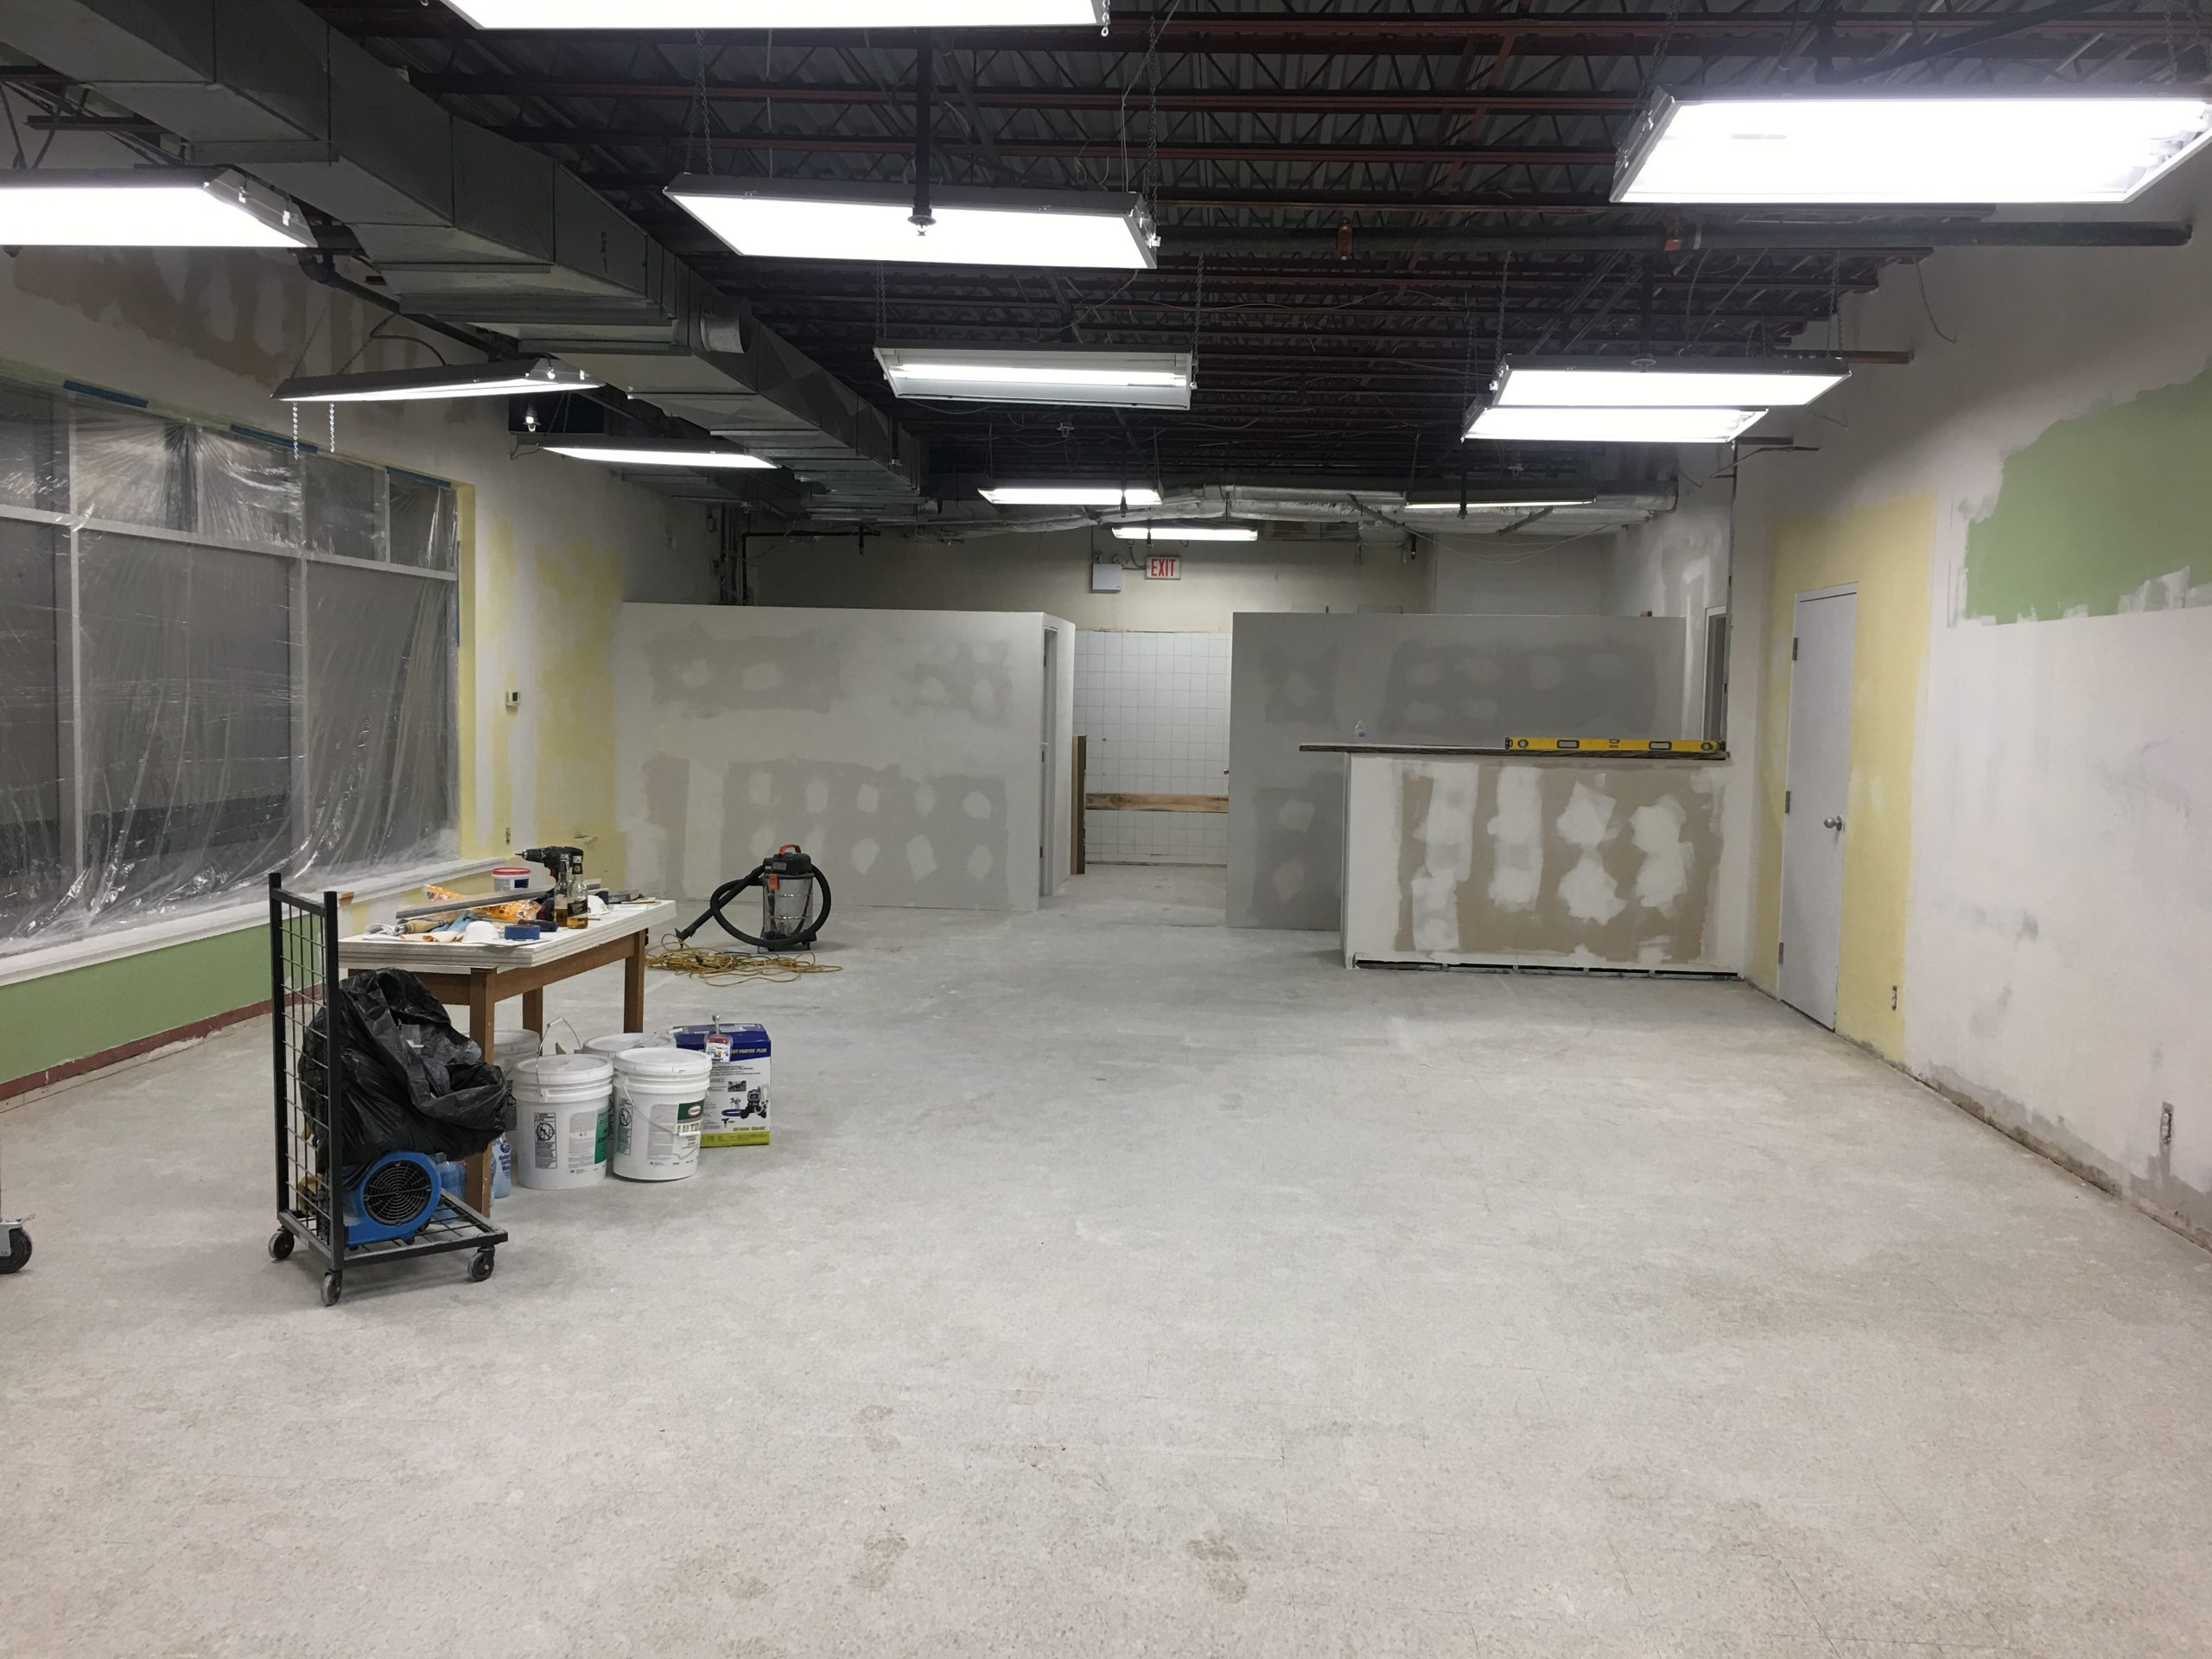 Before the opening of Boss, during renovations